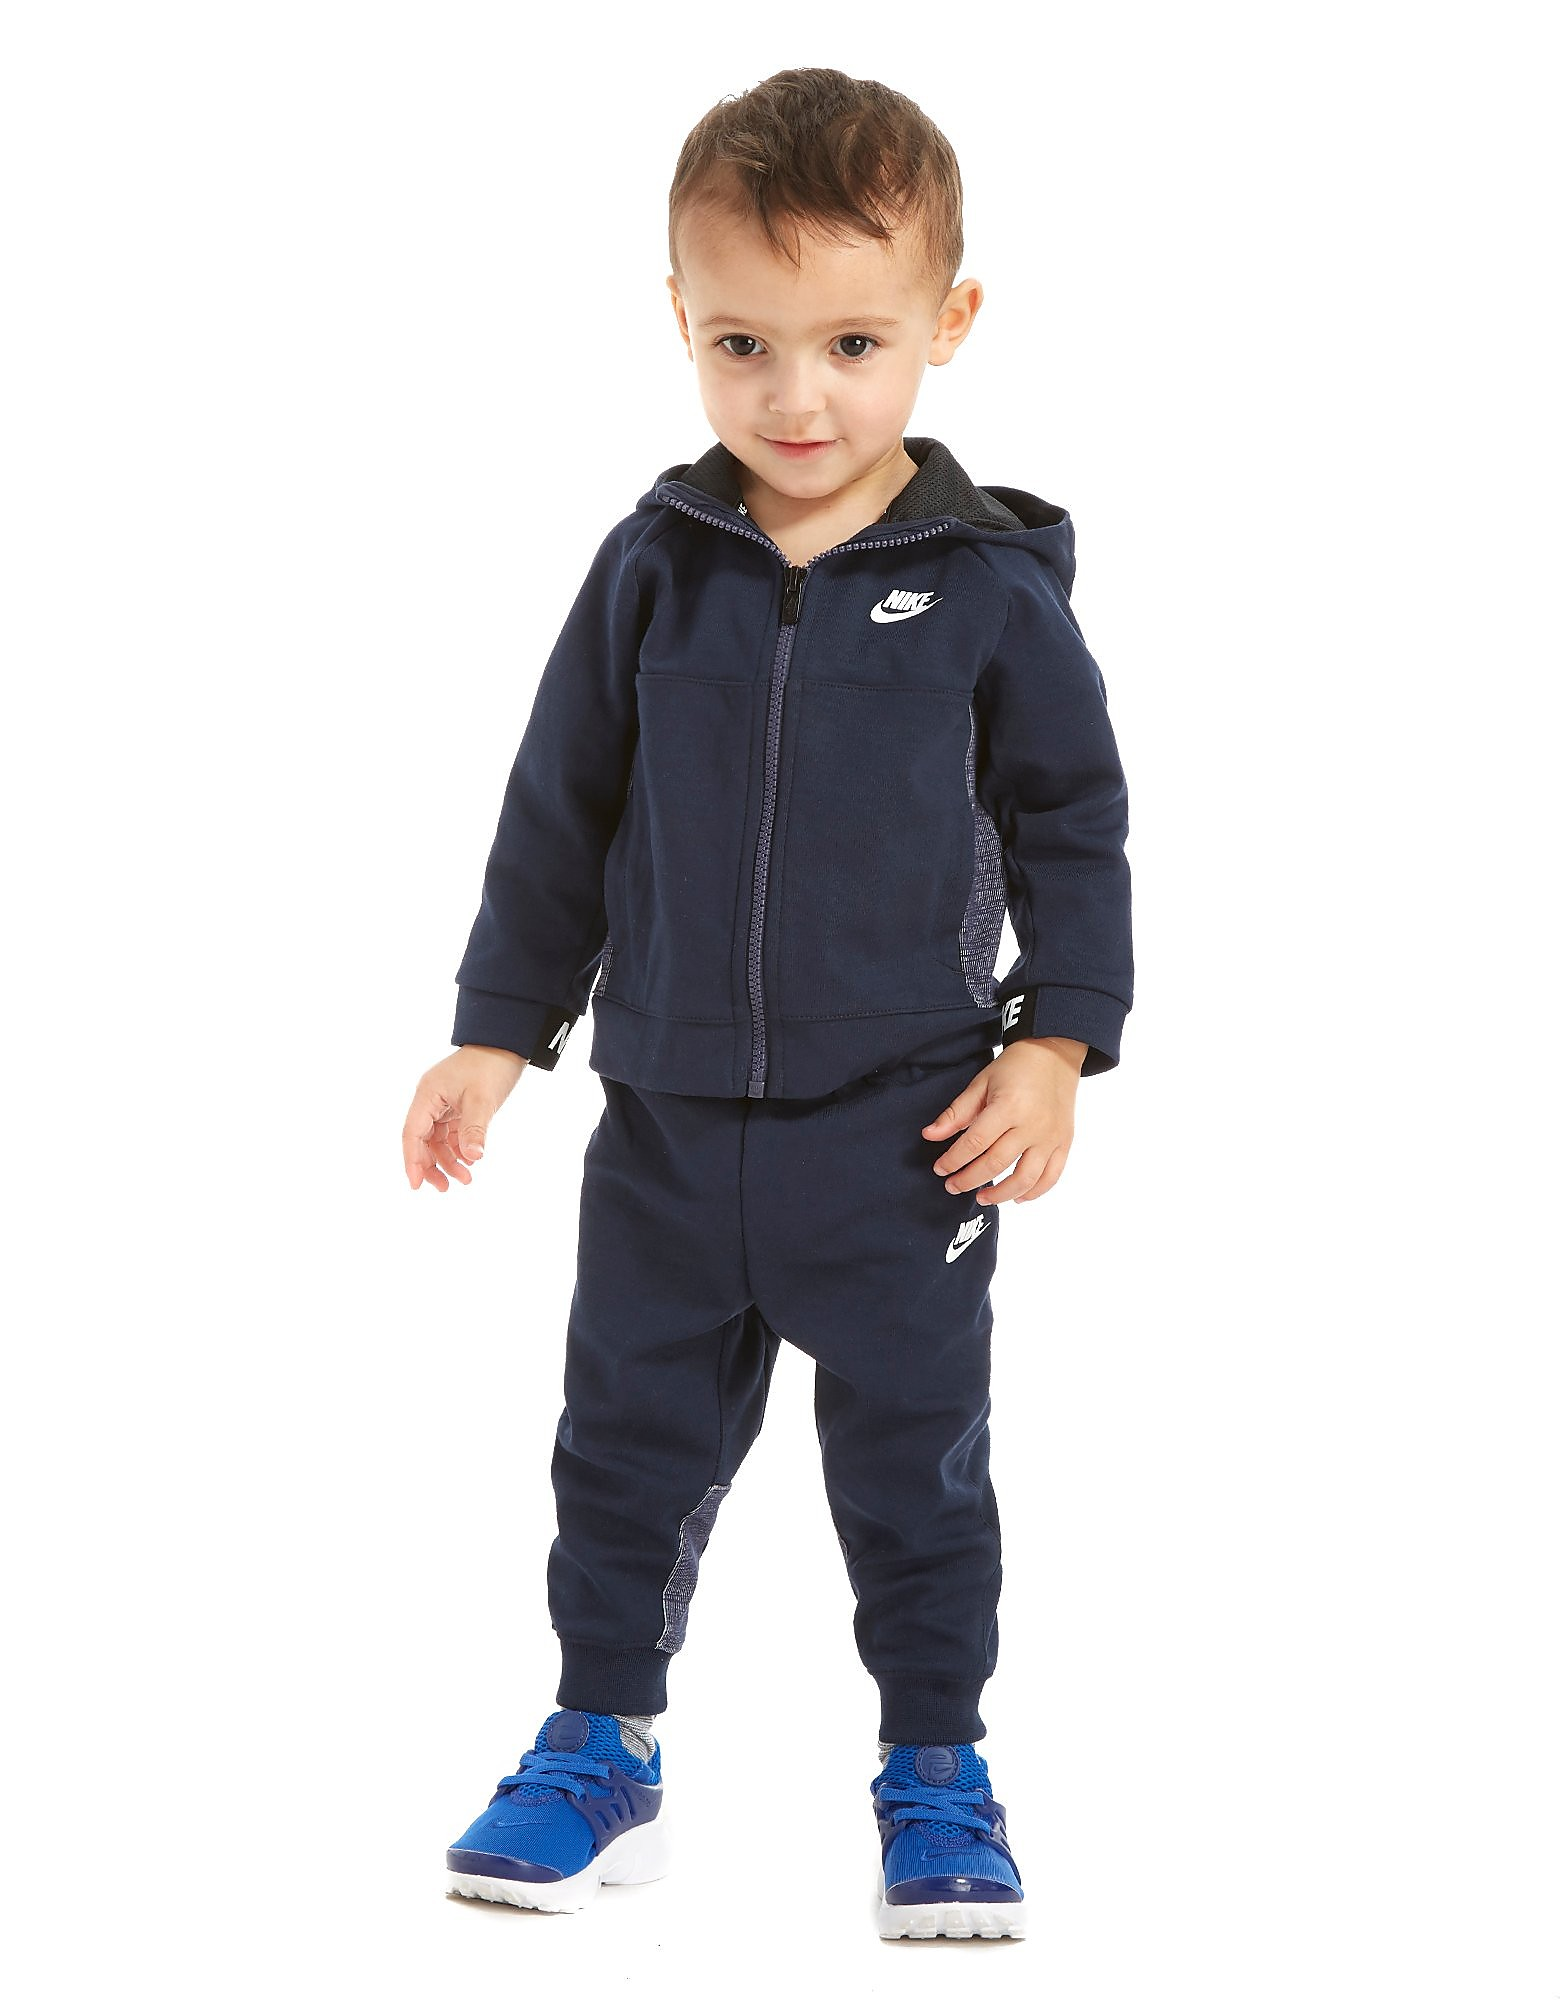 Nike Advance Full Zip Suit Infant